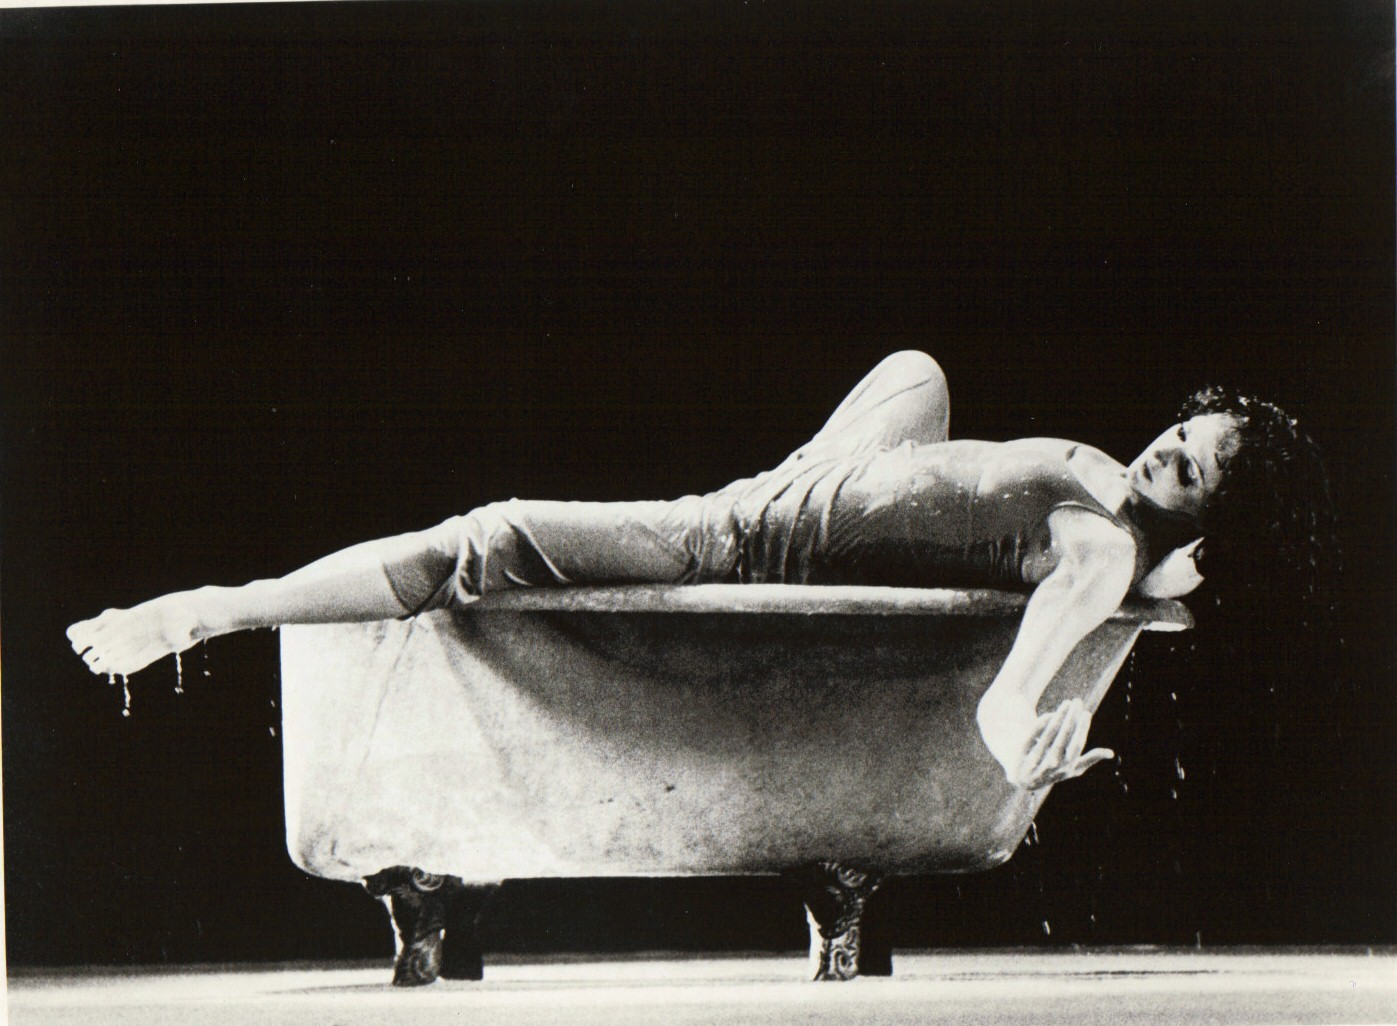 Tub  (1971); Photo by Colette Masson.